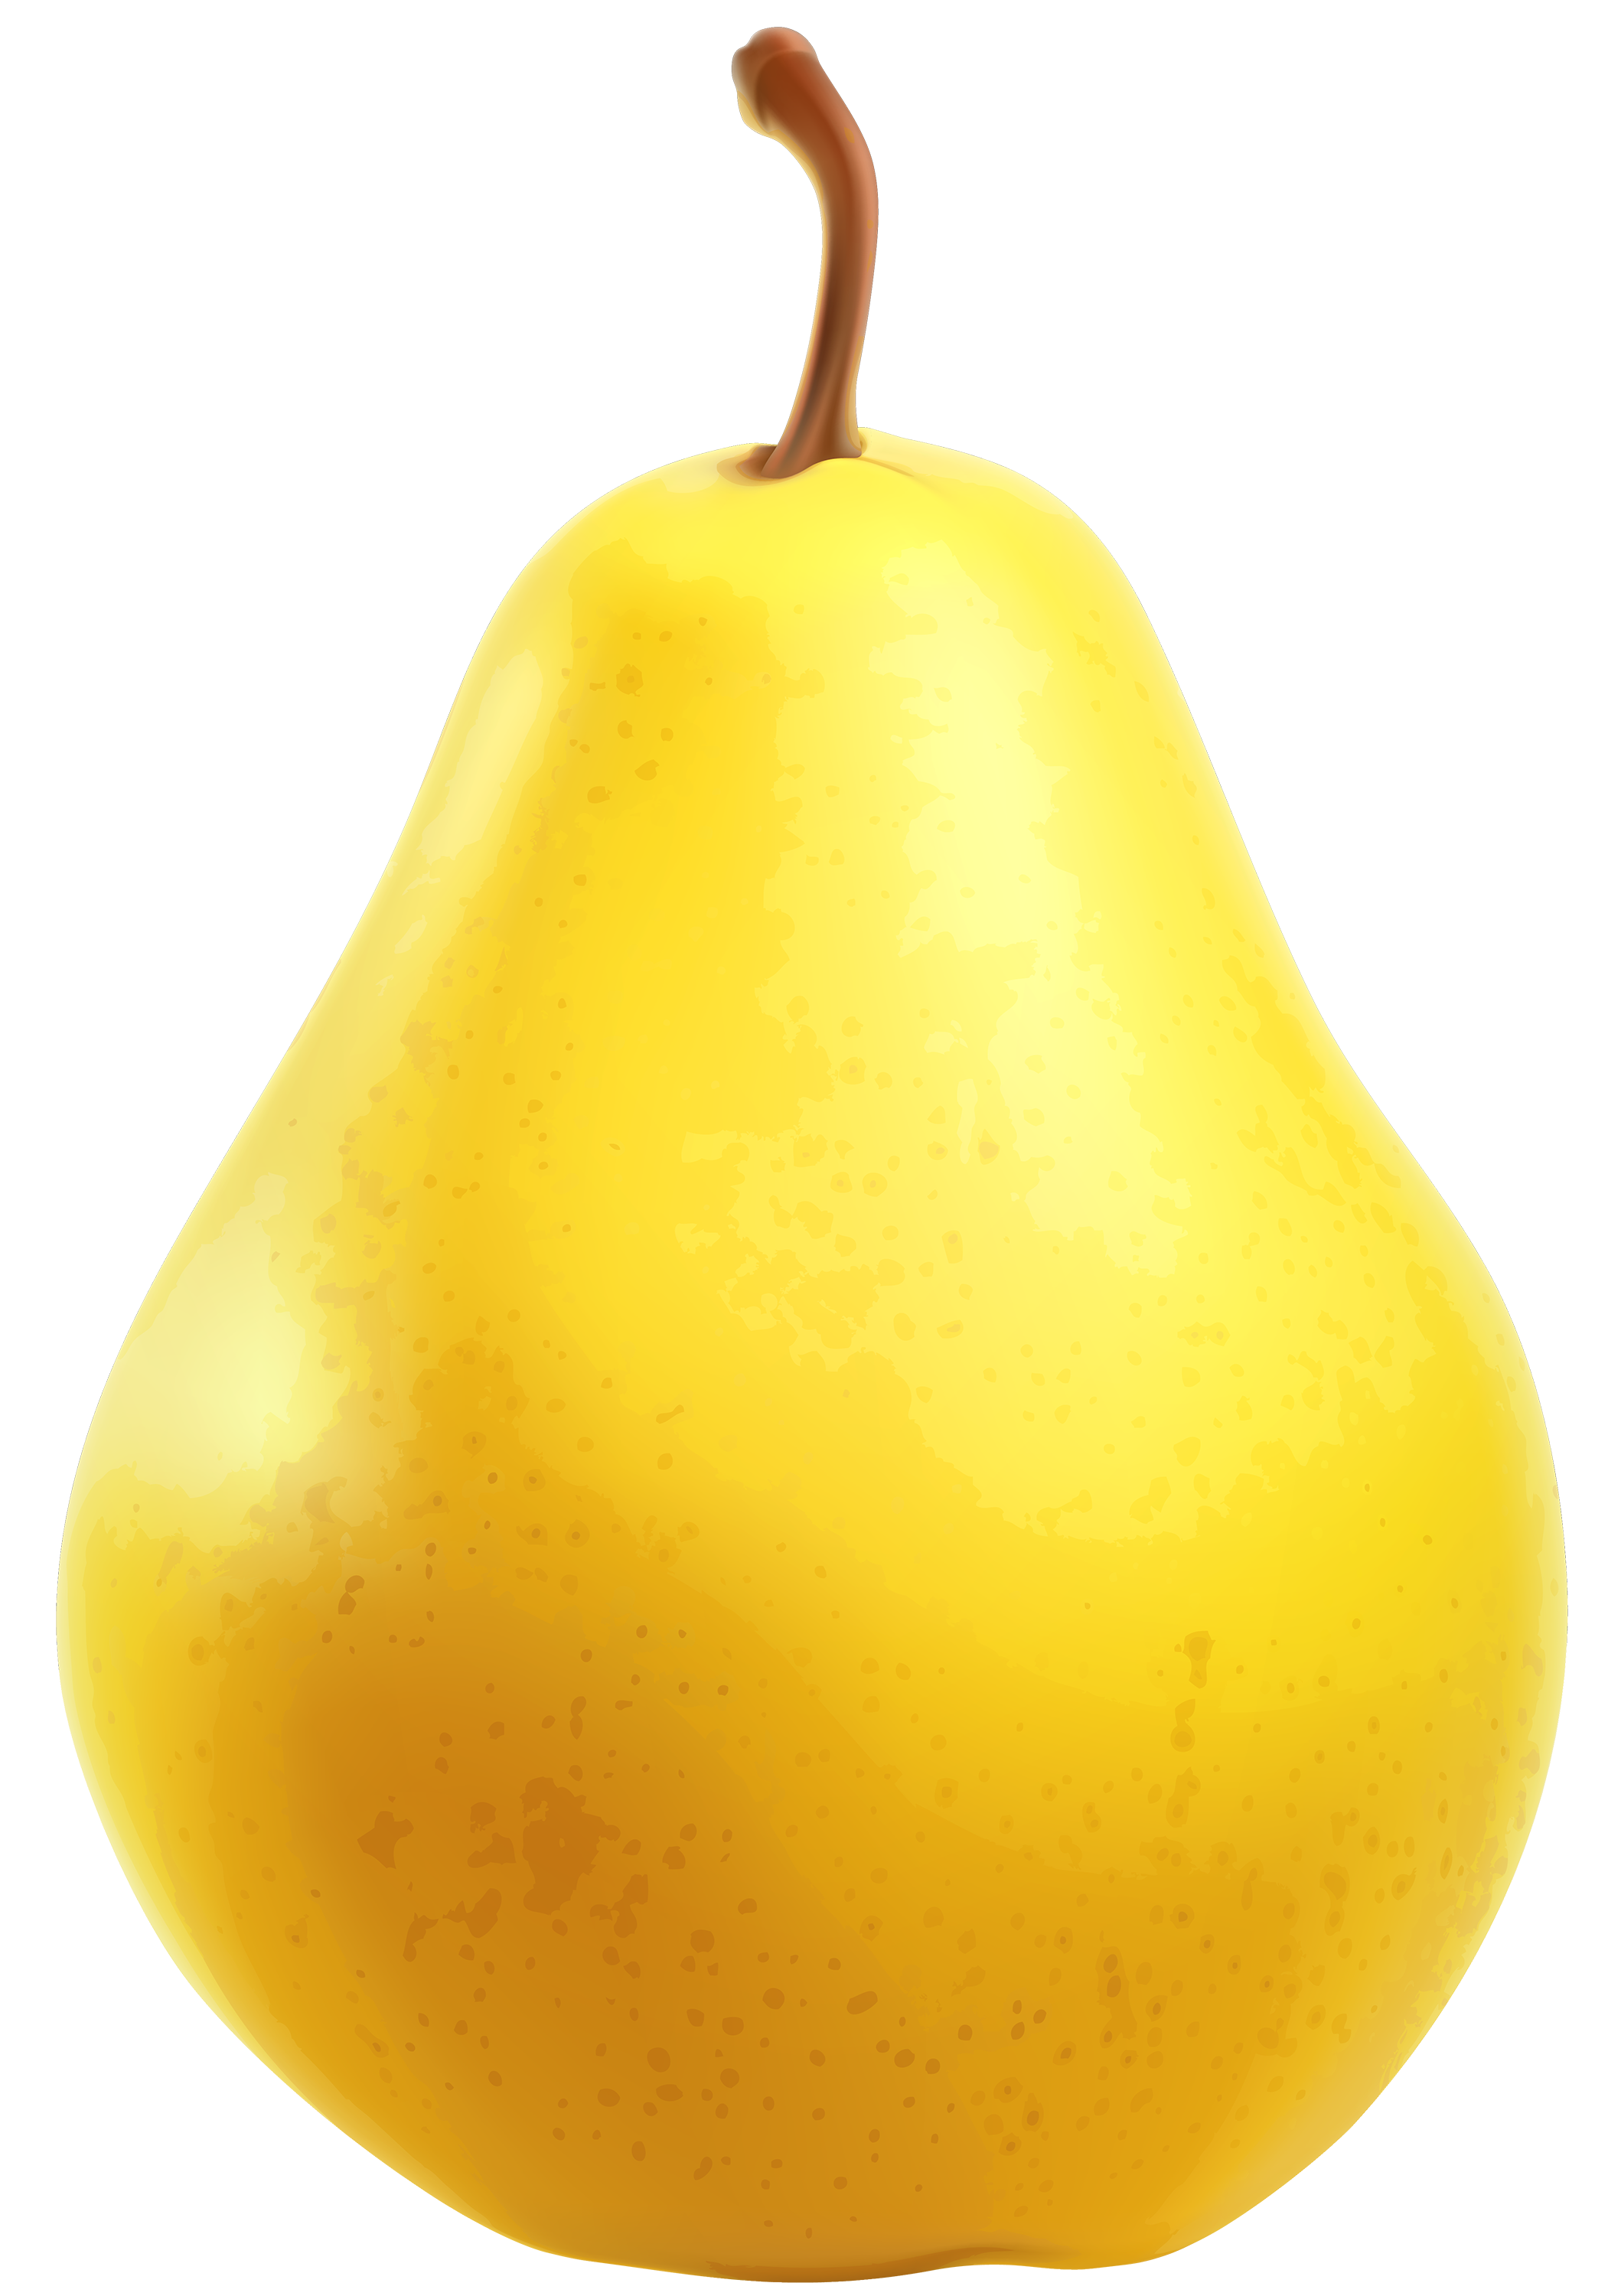 Pear clipart yellow pear. Png best web